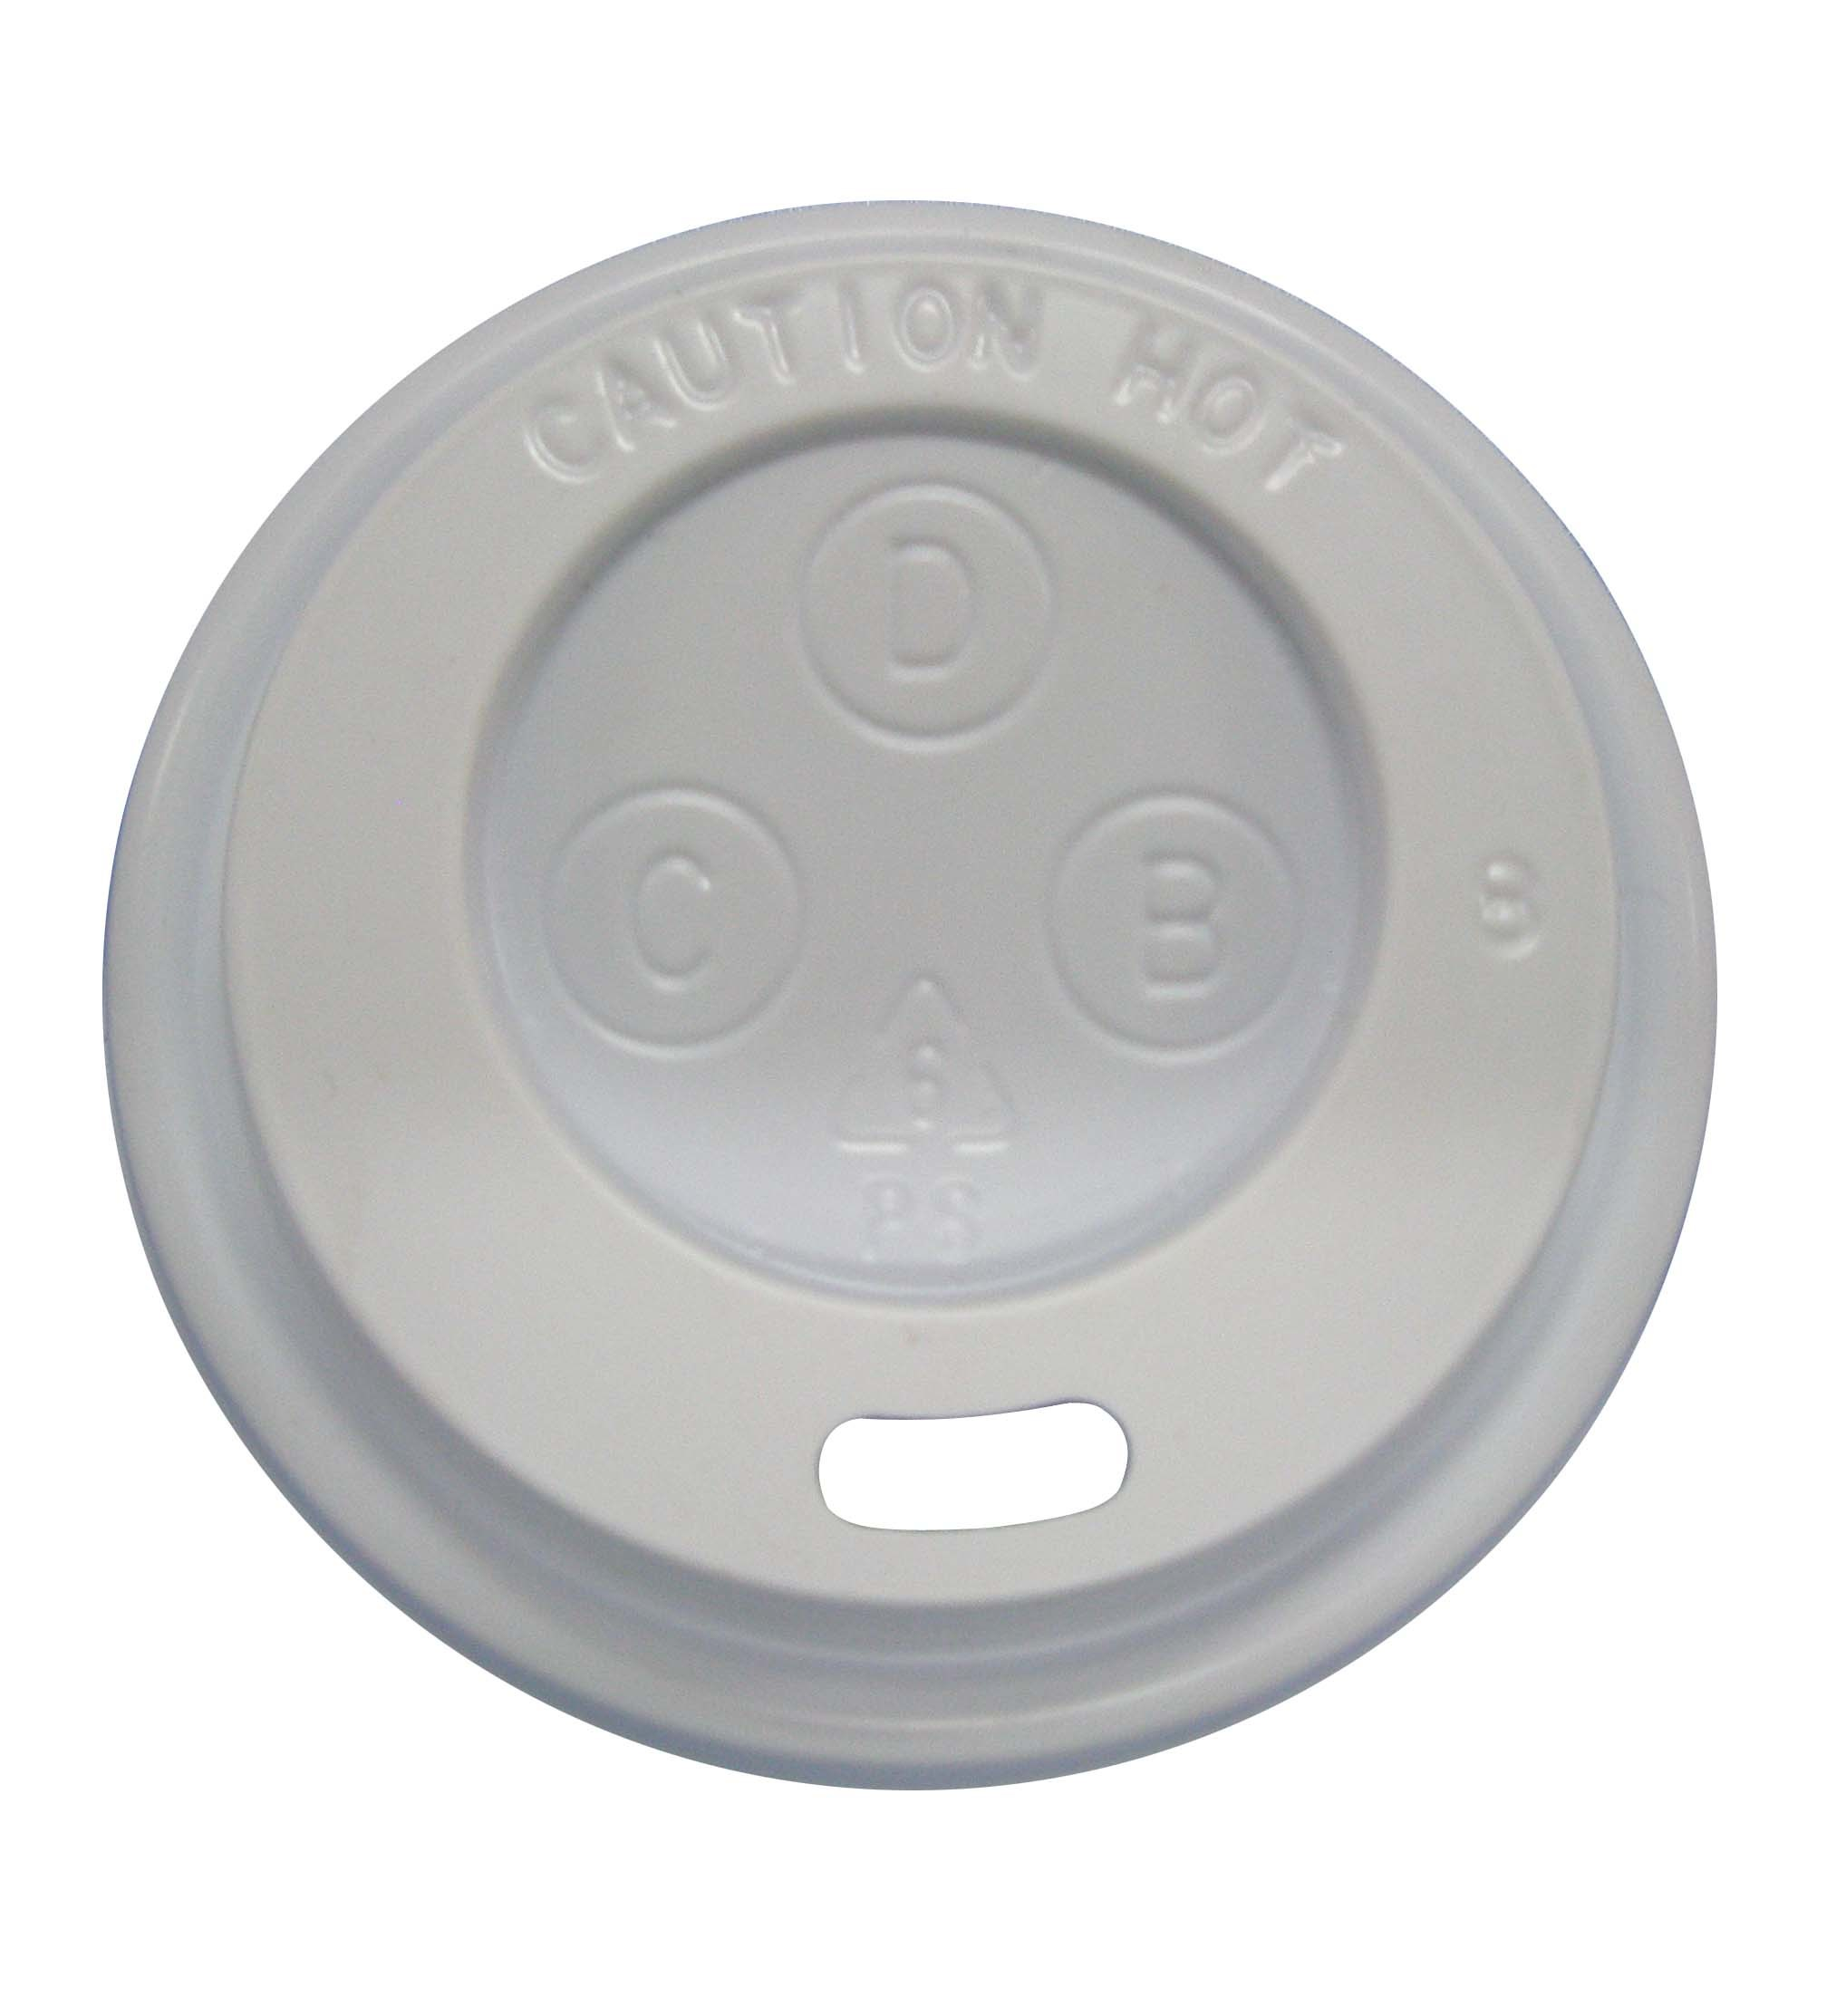 Coffee Cups With Lids : China coffee cup lid plastic